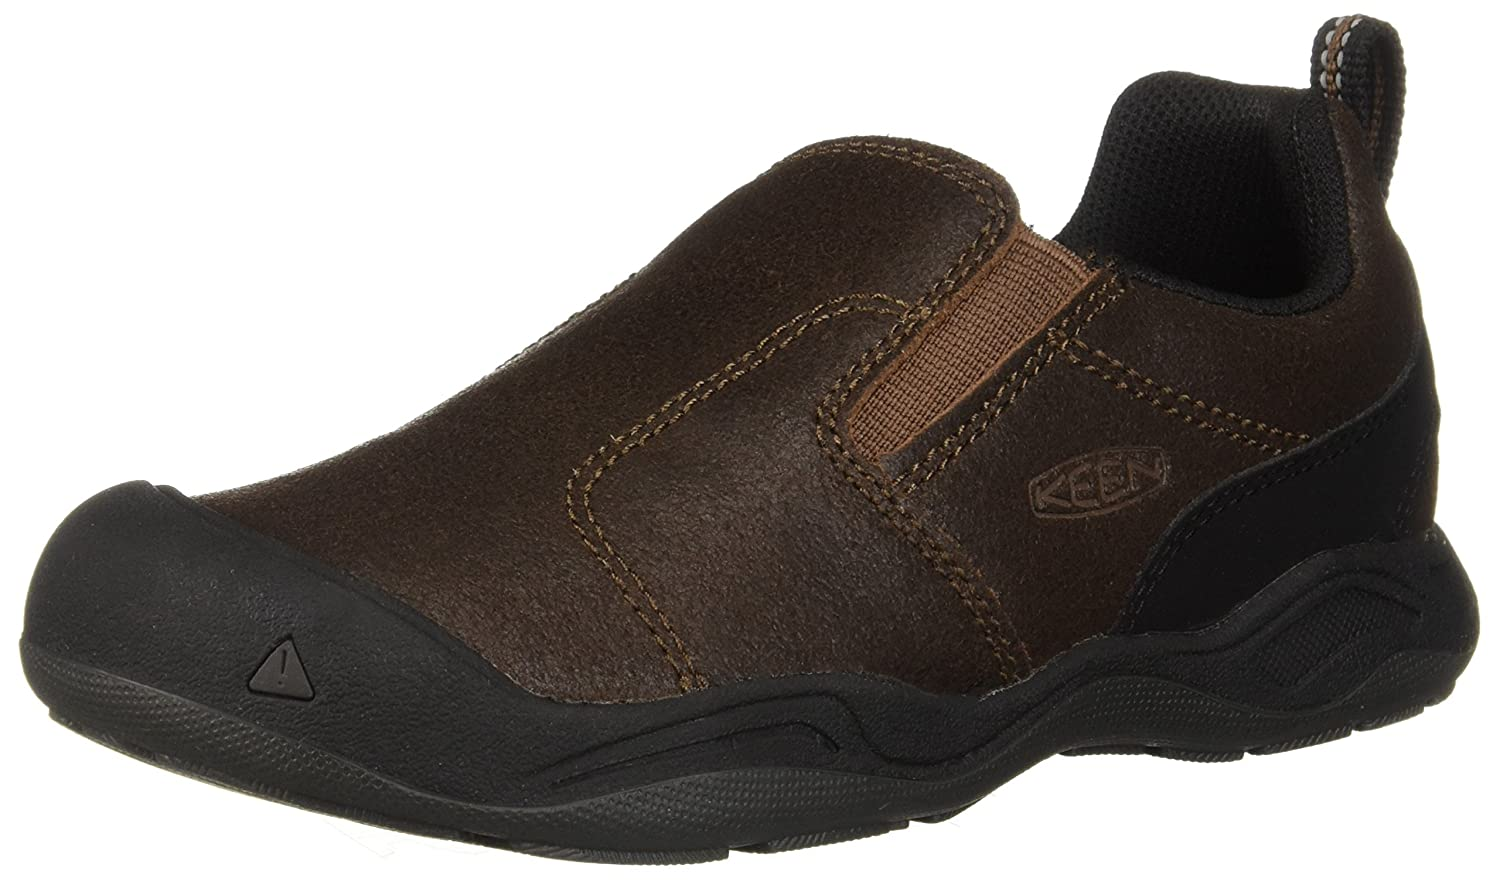 KEEN Jasper Slip-on Hiking Shoe B077BF7YSQ 1 M US|Dark Earth/Mulch